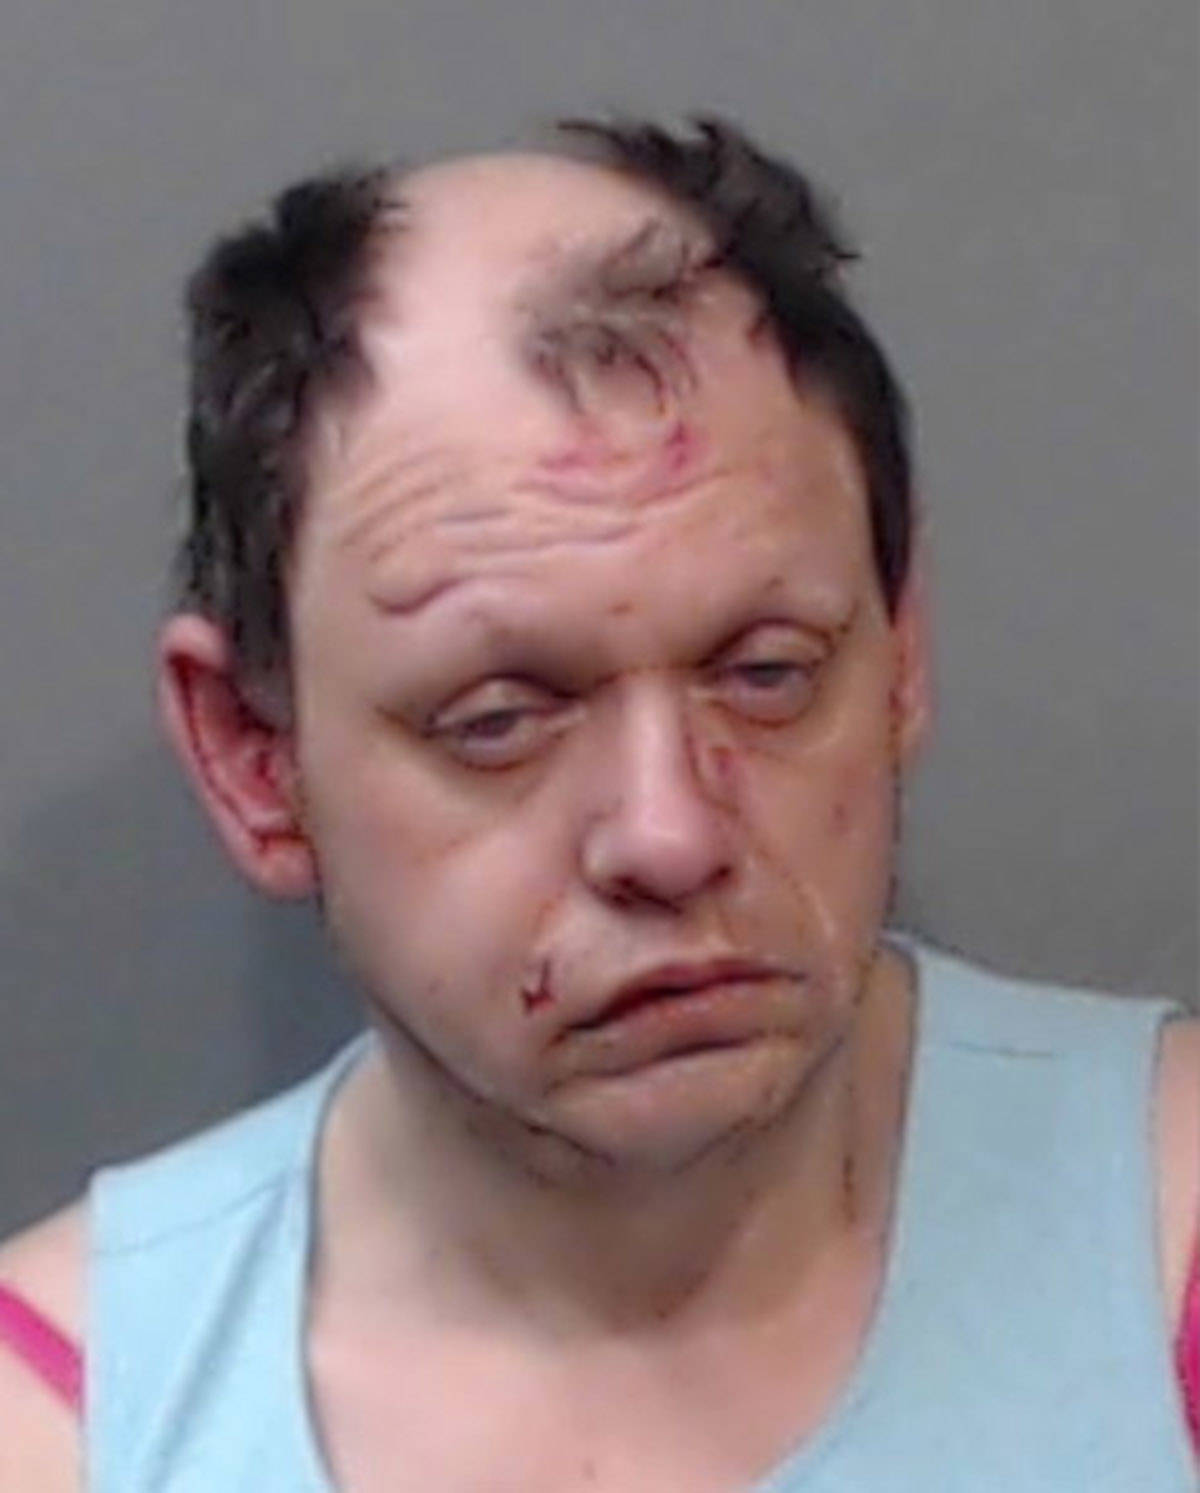 """Name: CHRISTIE, Gary Age: 52 Height: 5'8"""" ft Weight: 150 lbs Hair: Brown Eyes: Green Wanted: Willfully kill, Maim enforcement animal Warrant in effect: August 3, 2021 Parole Jurisdiction: Chilliwack, BC"""